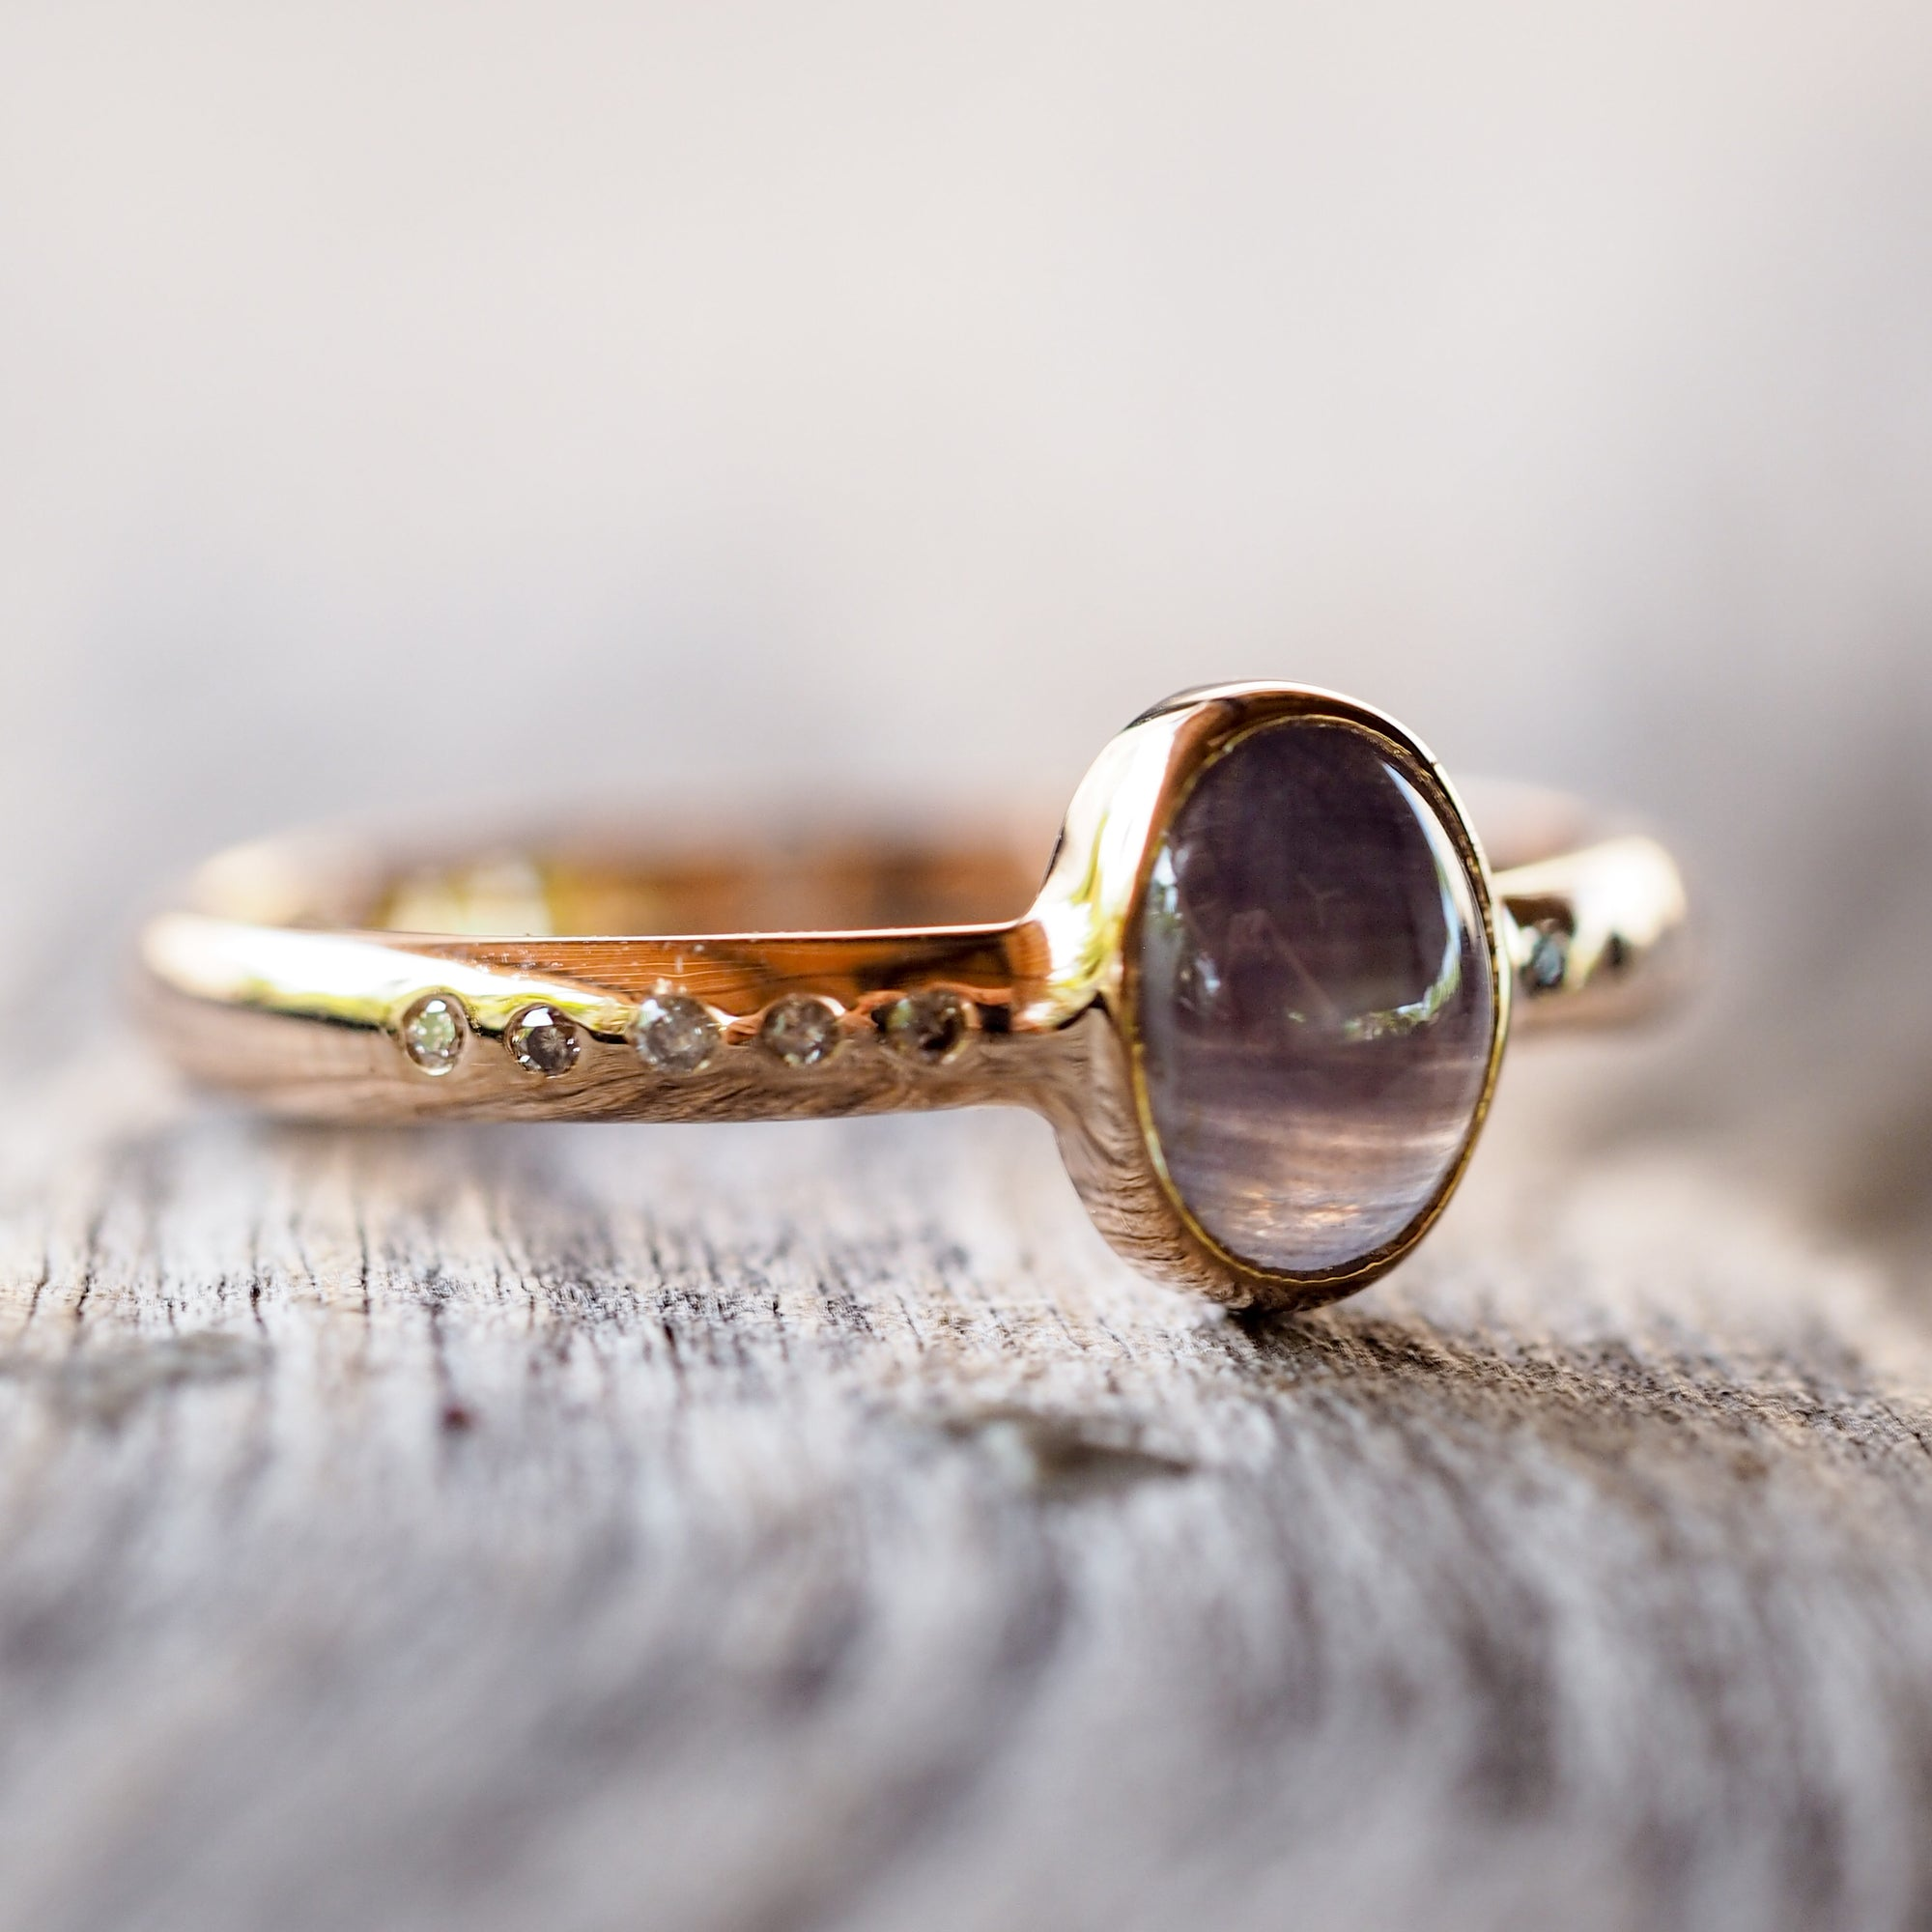 Ceylon Star Sapphire Ring in Rose Gold - Gardens of the Sun Jewelry